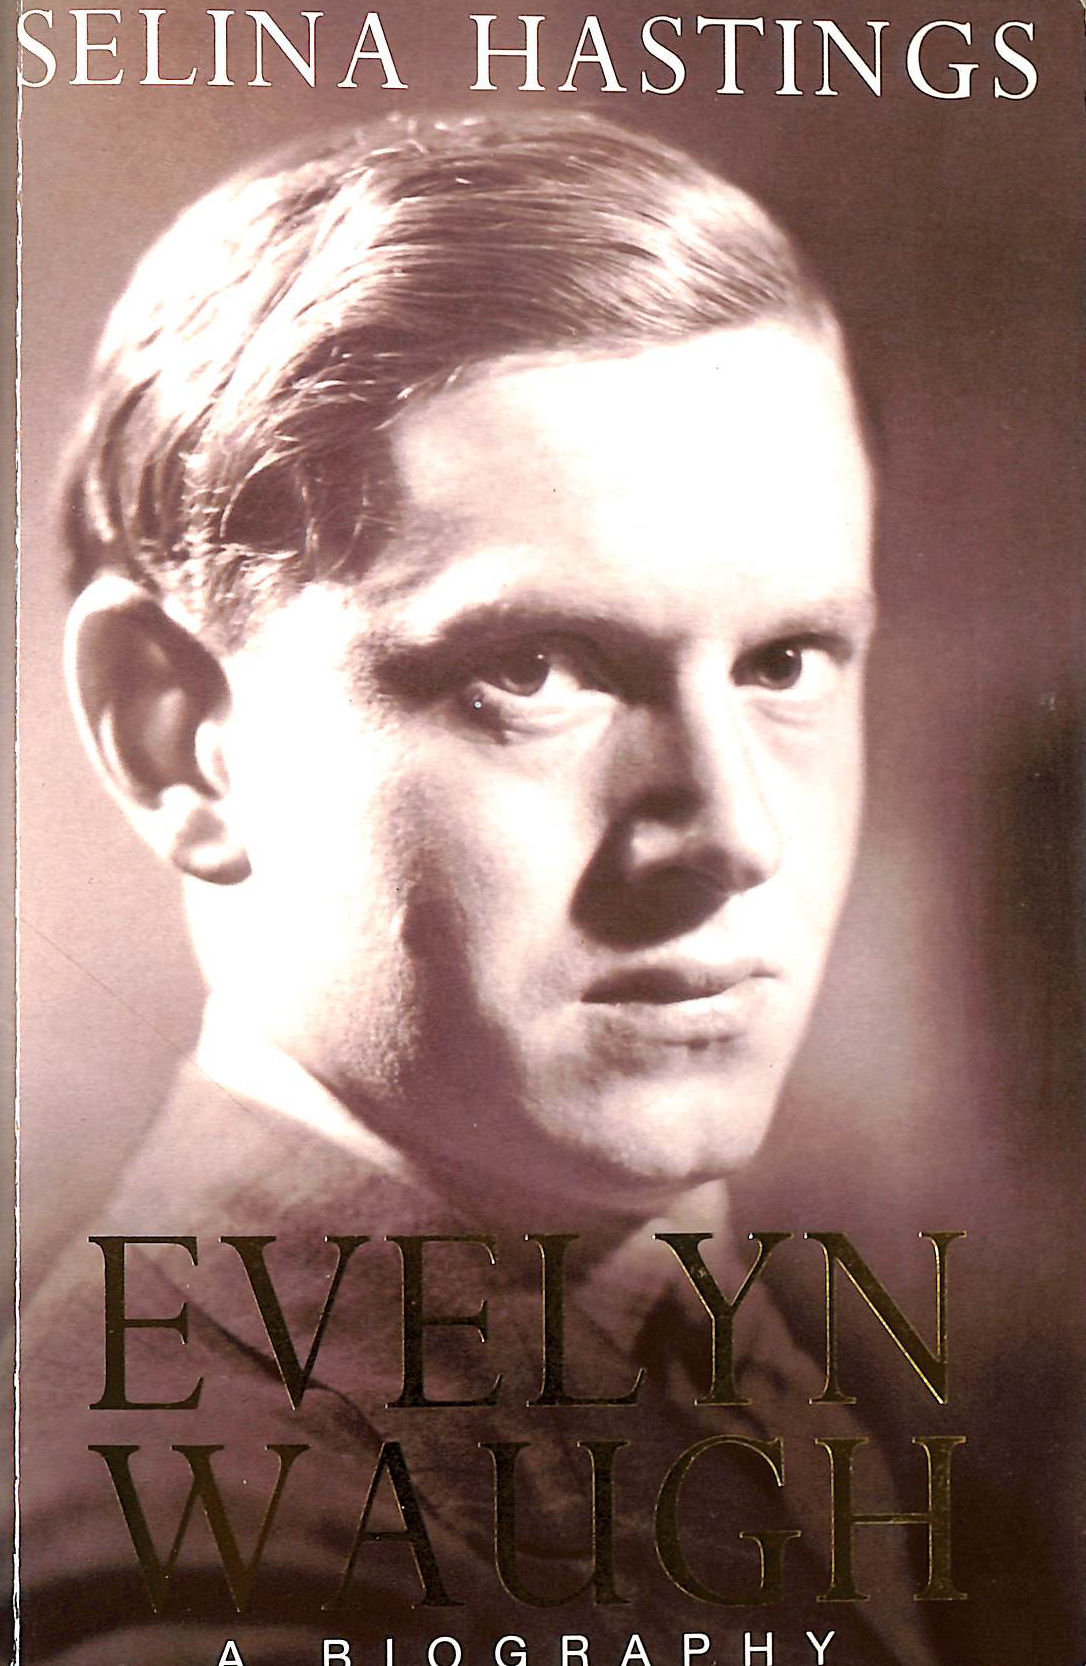 Image for Evelyn Waugh: A Biography (Vintage Lives)